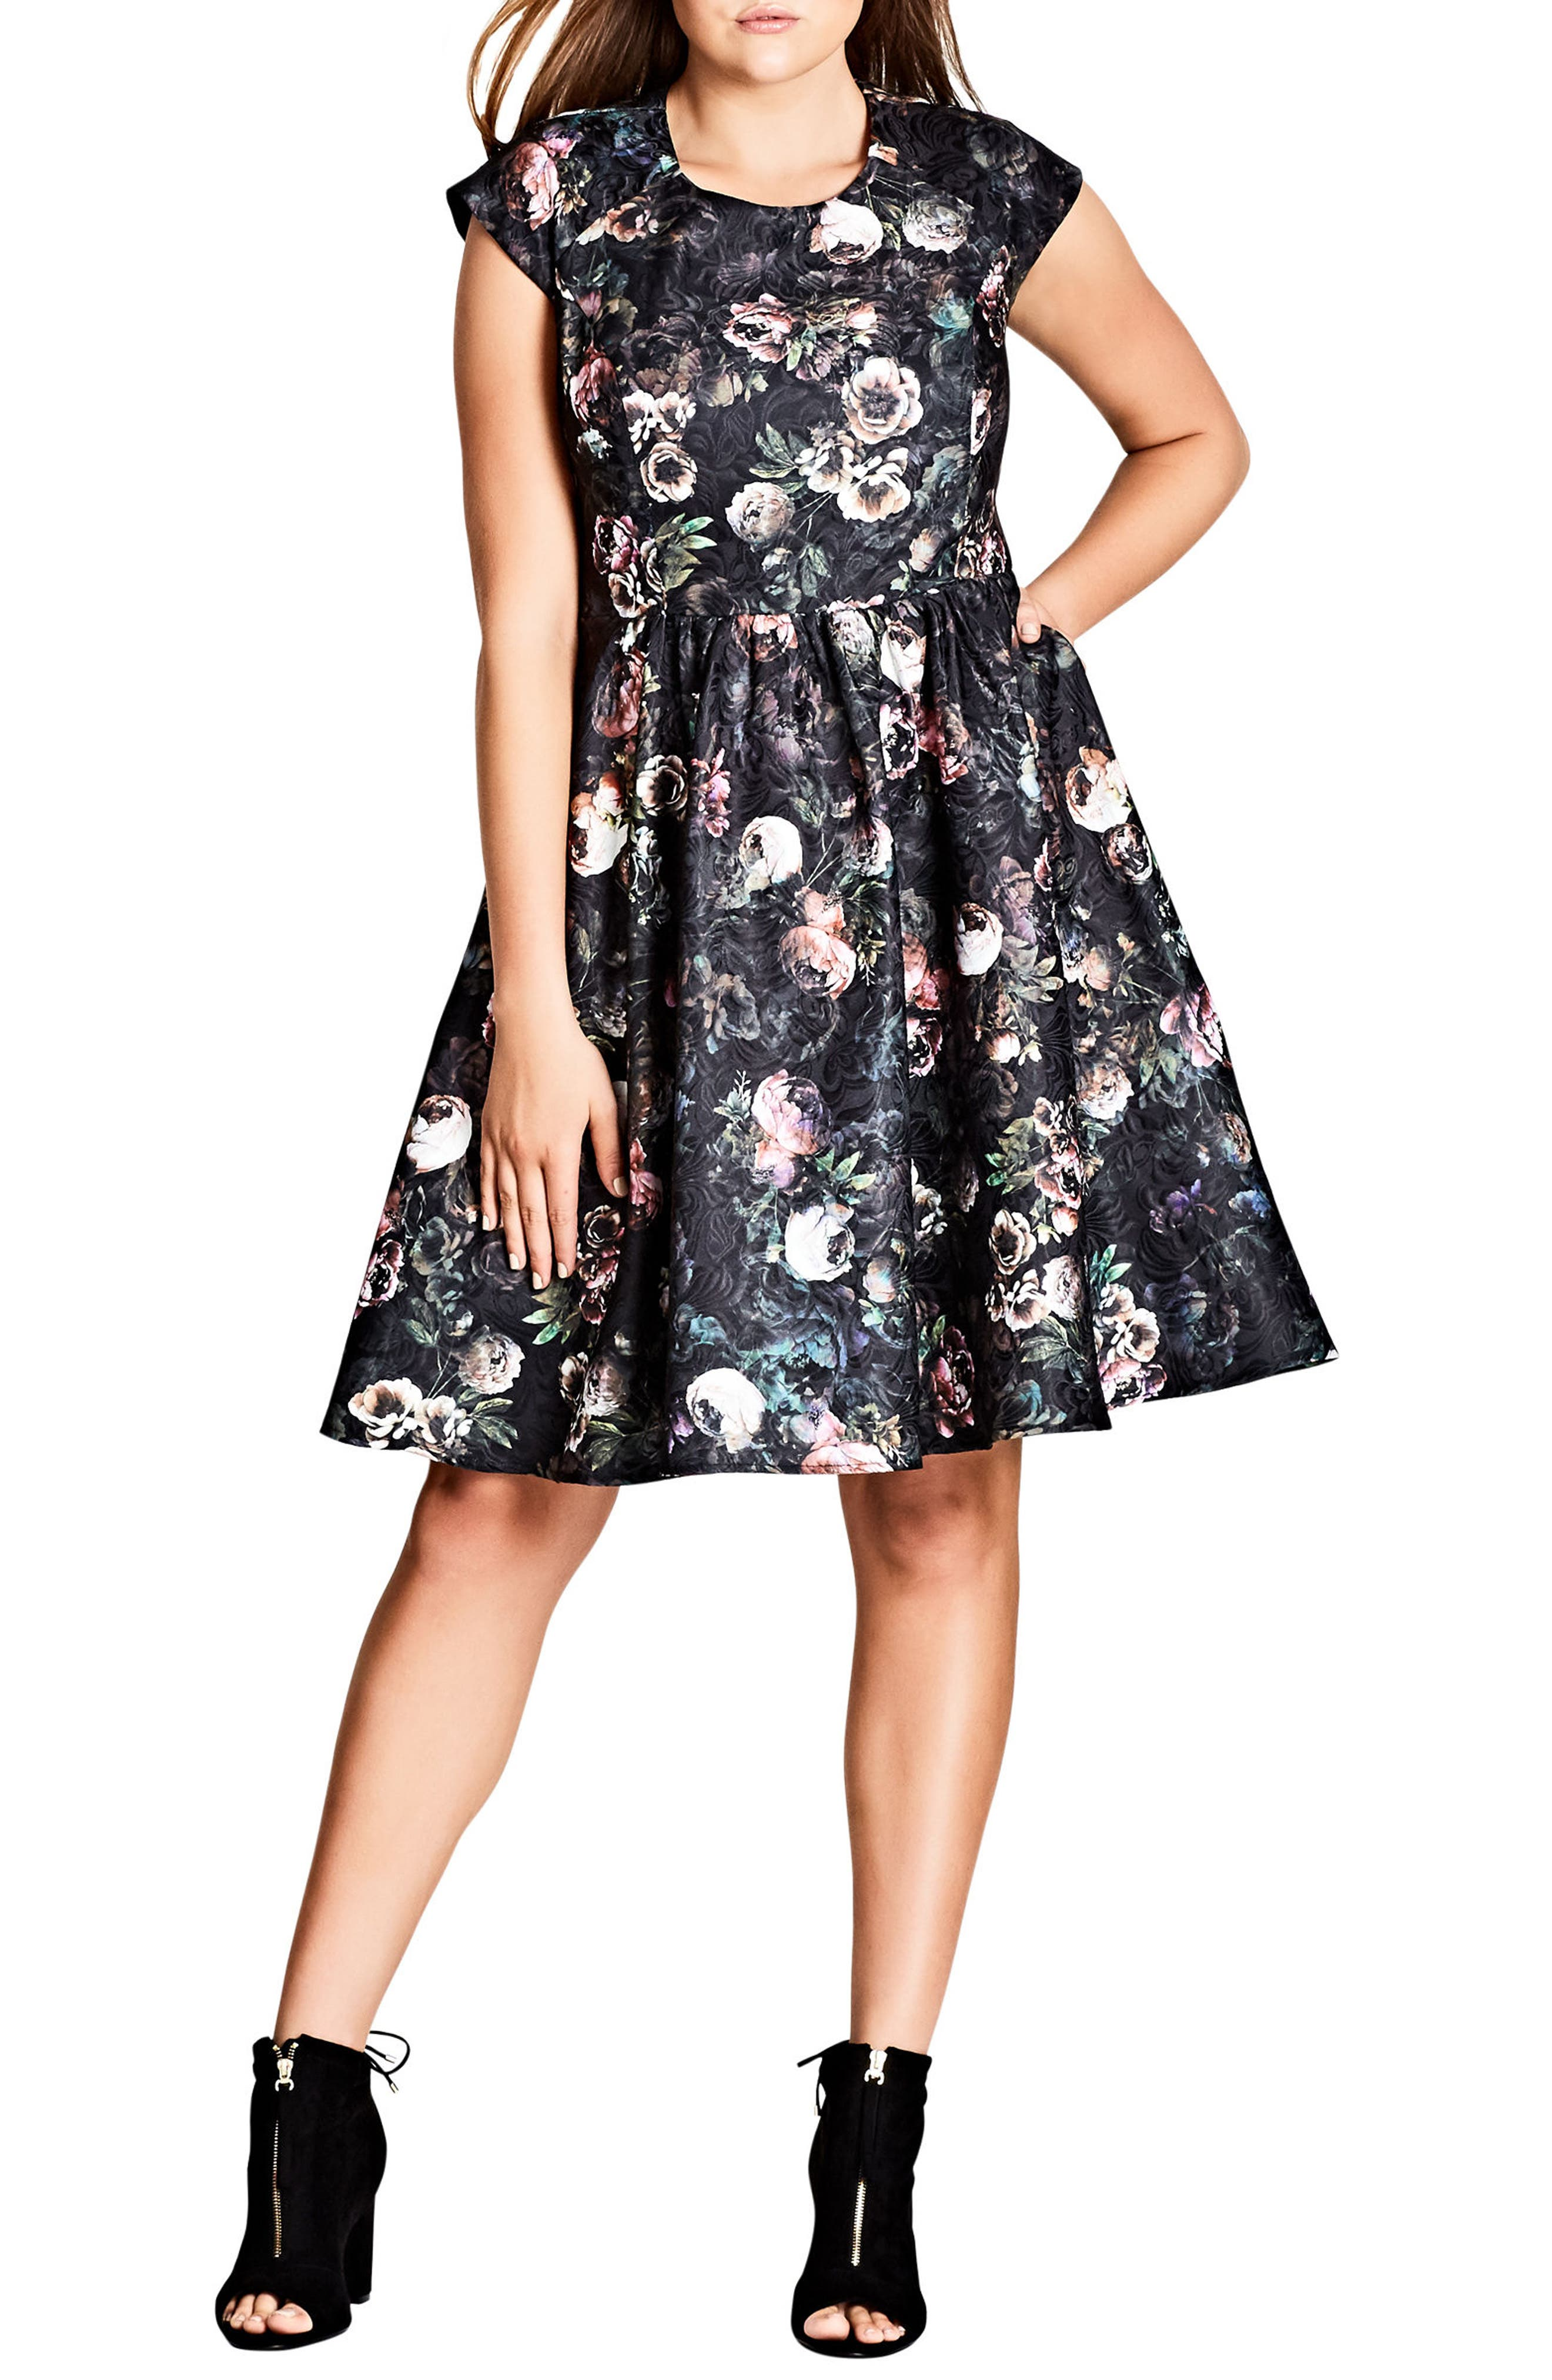 Alternate Image 1 Selected - City Chic Vintage Peony Fit & Flare Dress (Plus Size)